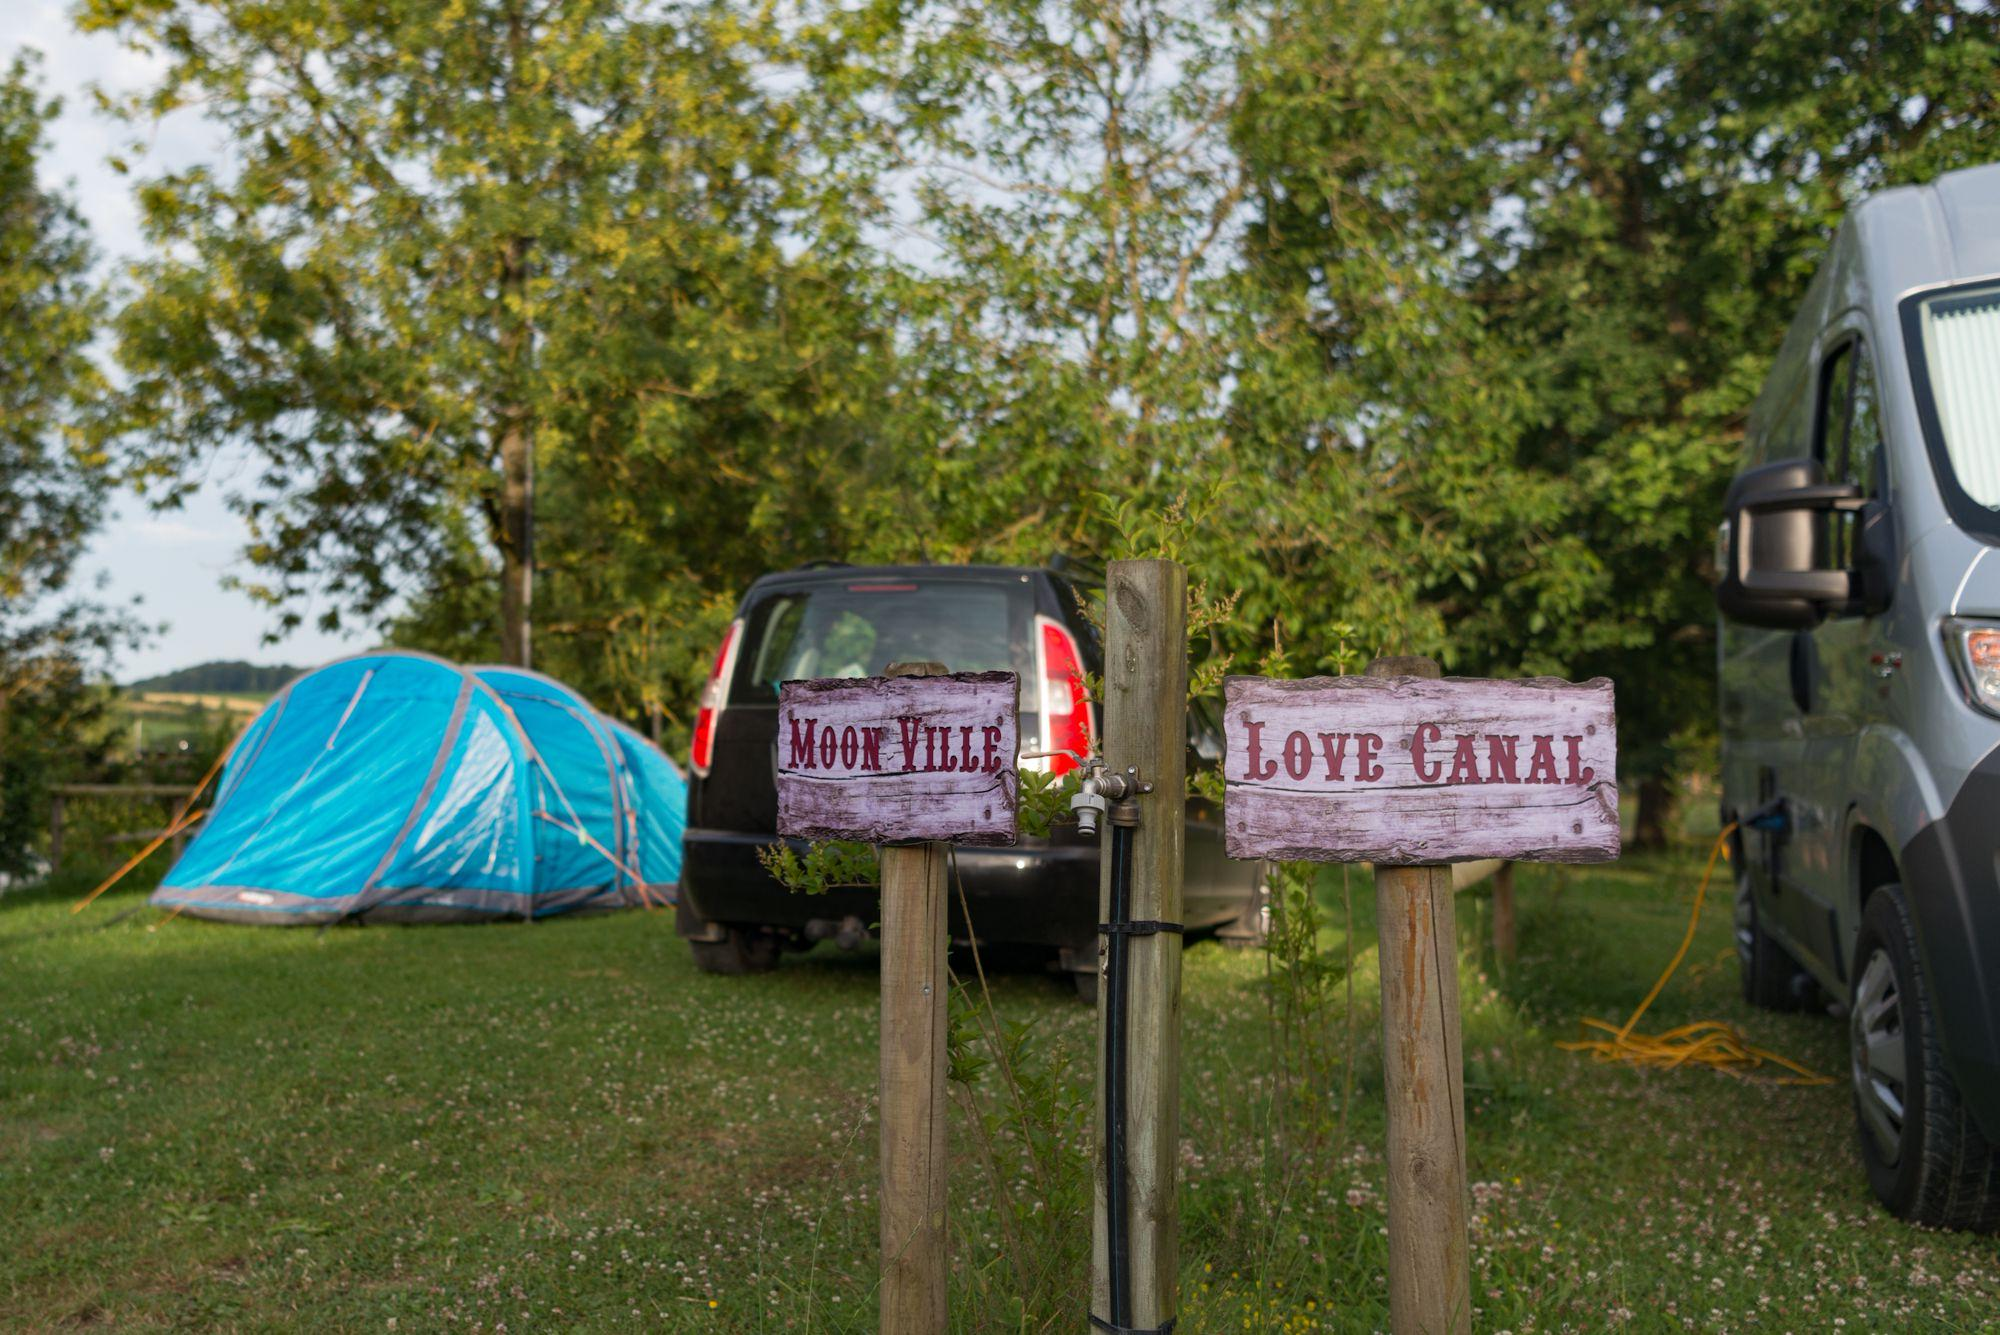 Campsites in Picardie